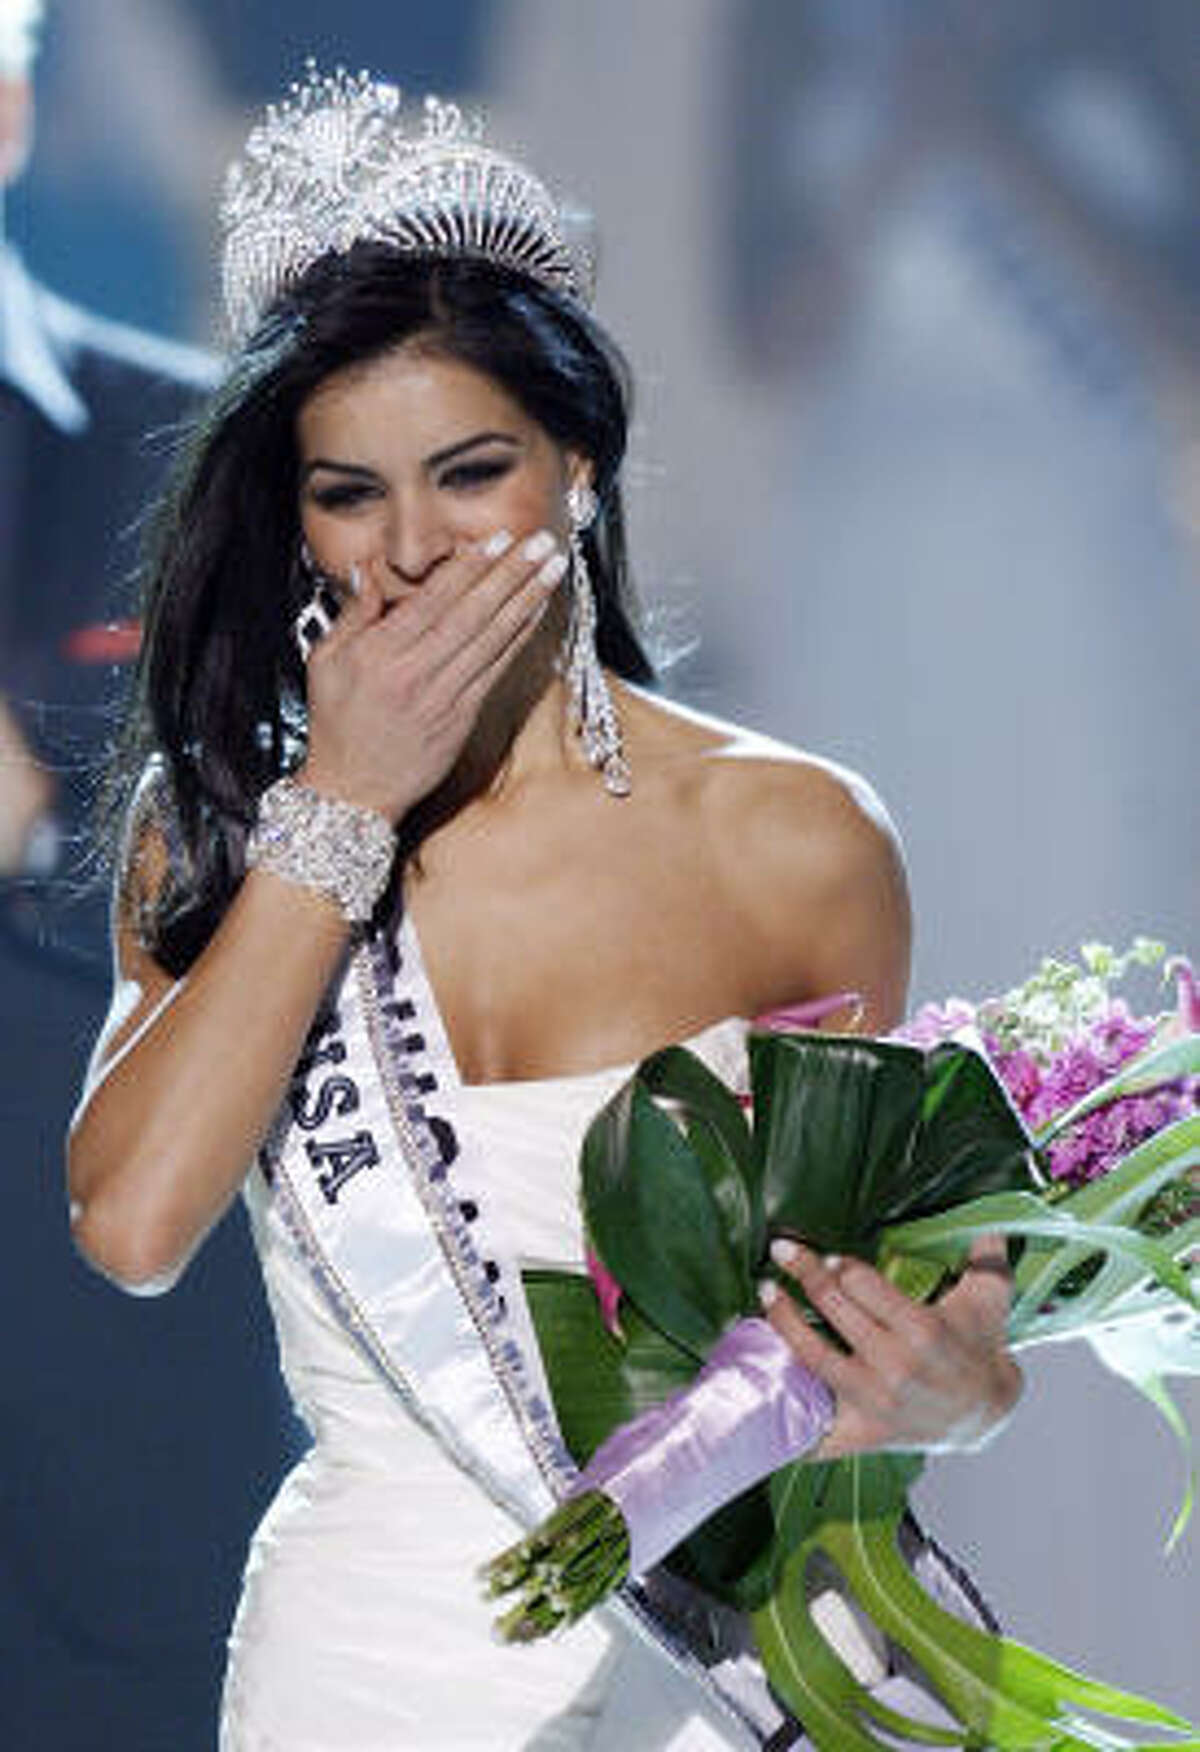 It's not clear whether Fakihm Miss Michigan, is the first Arab-American, Muslim or immigrant to win the Miss USA title.